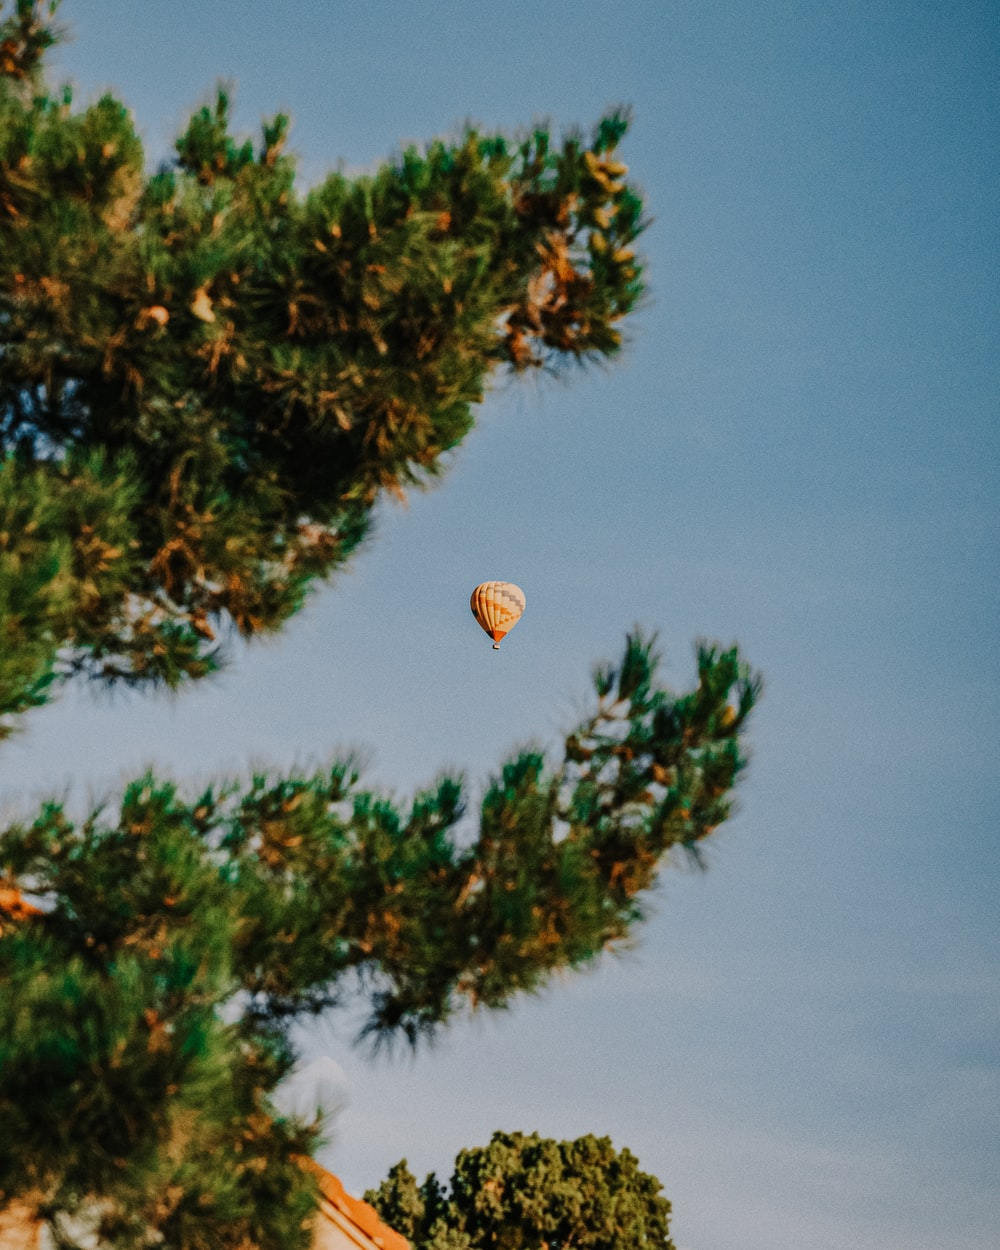 hot air balloon flying over green pine tree during daytime